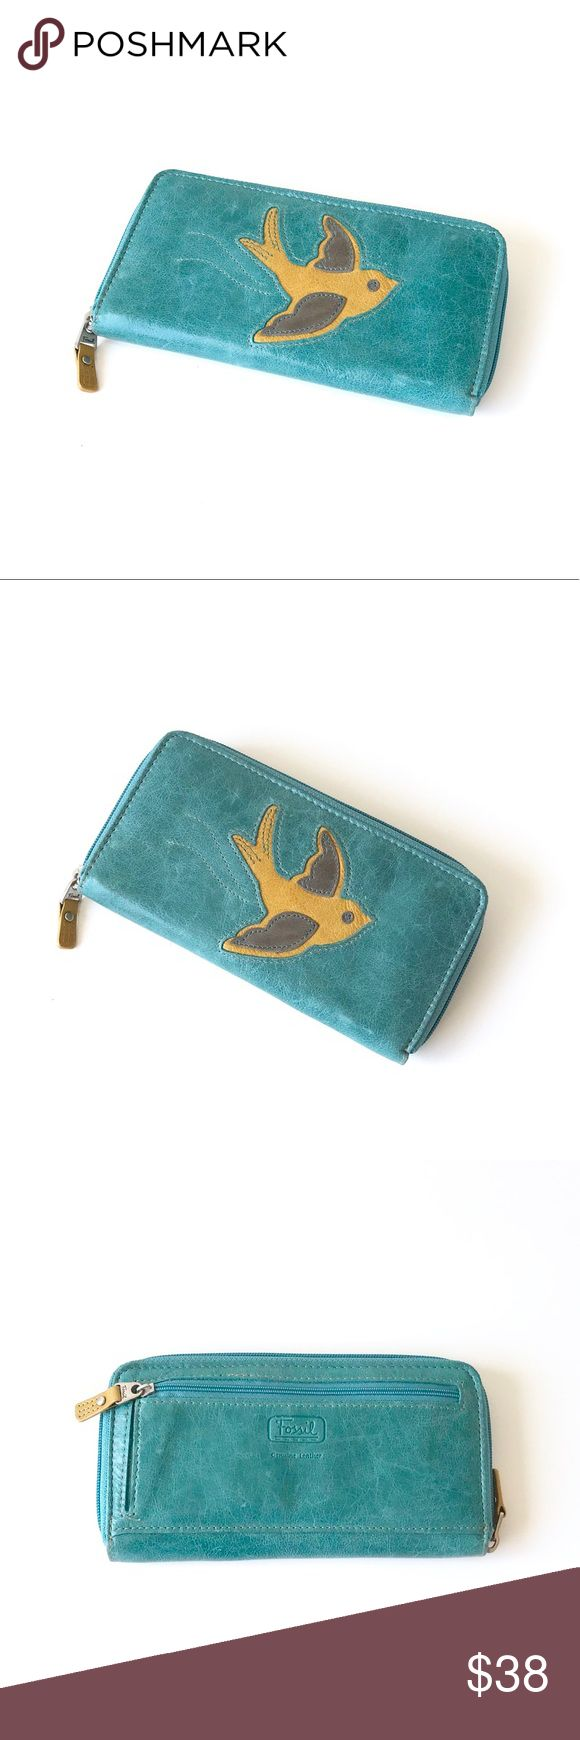 """Fossil • Candy Ivy Clutch Wallet NWT. Candy Icon clutch wallet from Fossil. Vibrant colors and lovely Bird Print. Perfect gift for the season!   • 7 1/2"""" W x 3/4"""" D x 4"""" H • new condition  • price firm, no offers please Fossil Bags Wallets"""